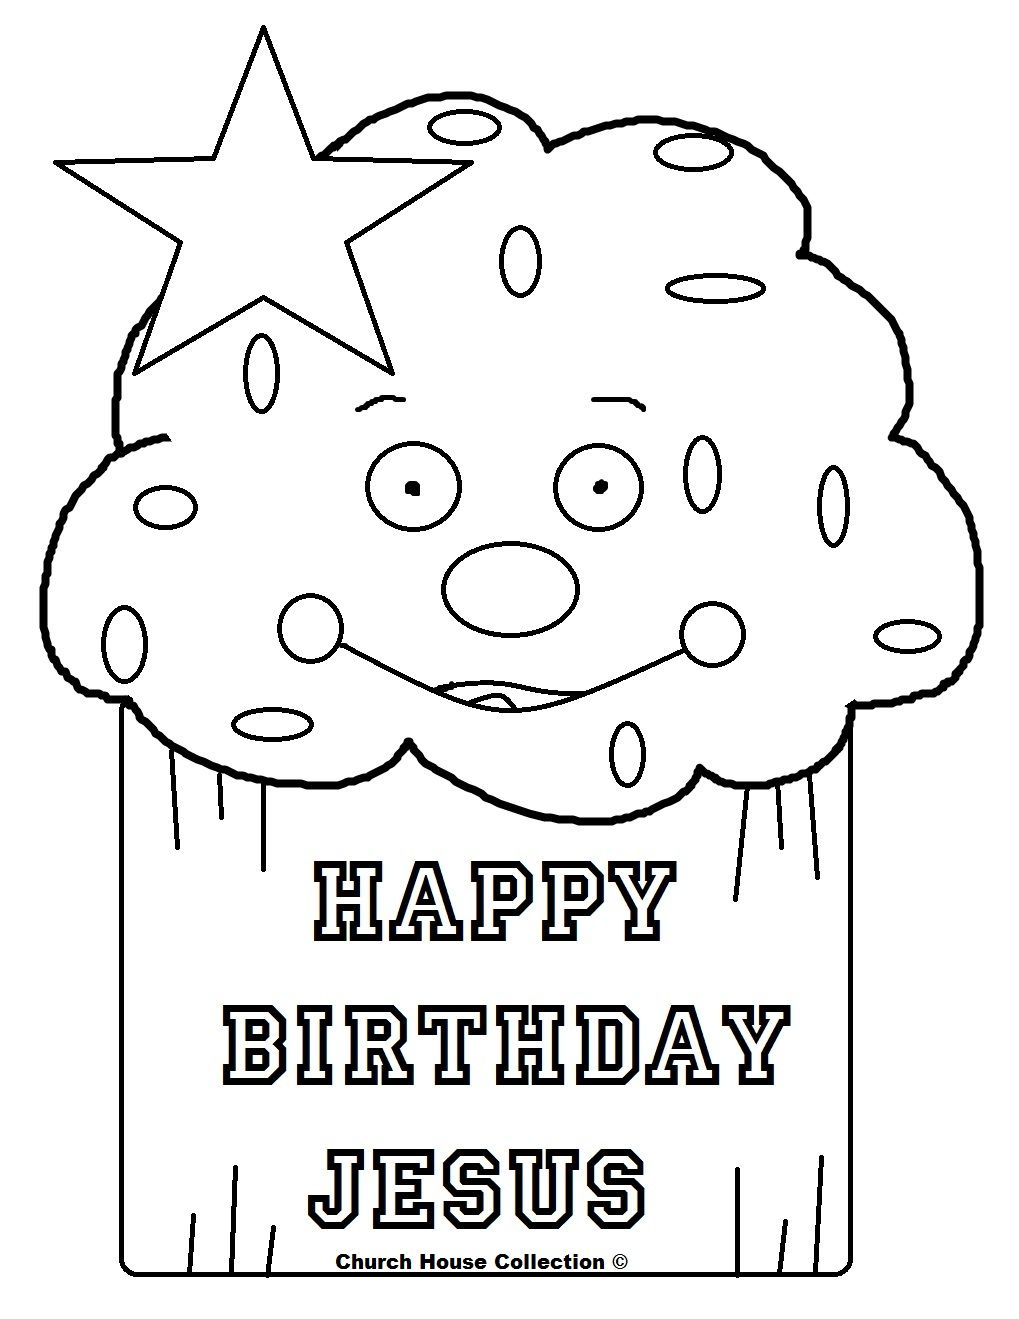 Church House Collection Blog Happy Birthday Jesus Cupcake Coloring Page Happy Birthday Jesus Happy Birthday Coloring Pages Birthday Coloring Pages